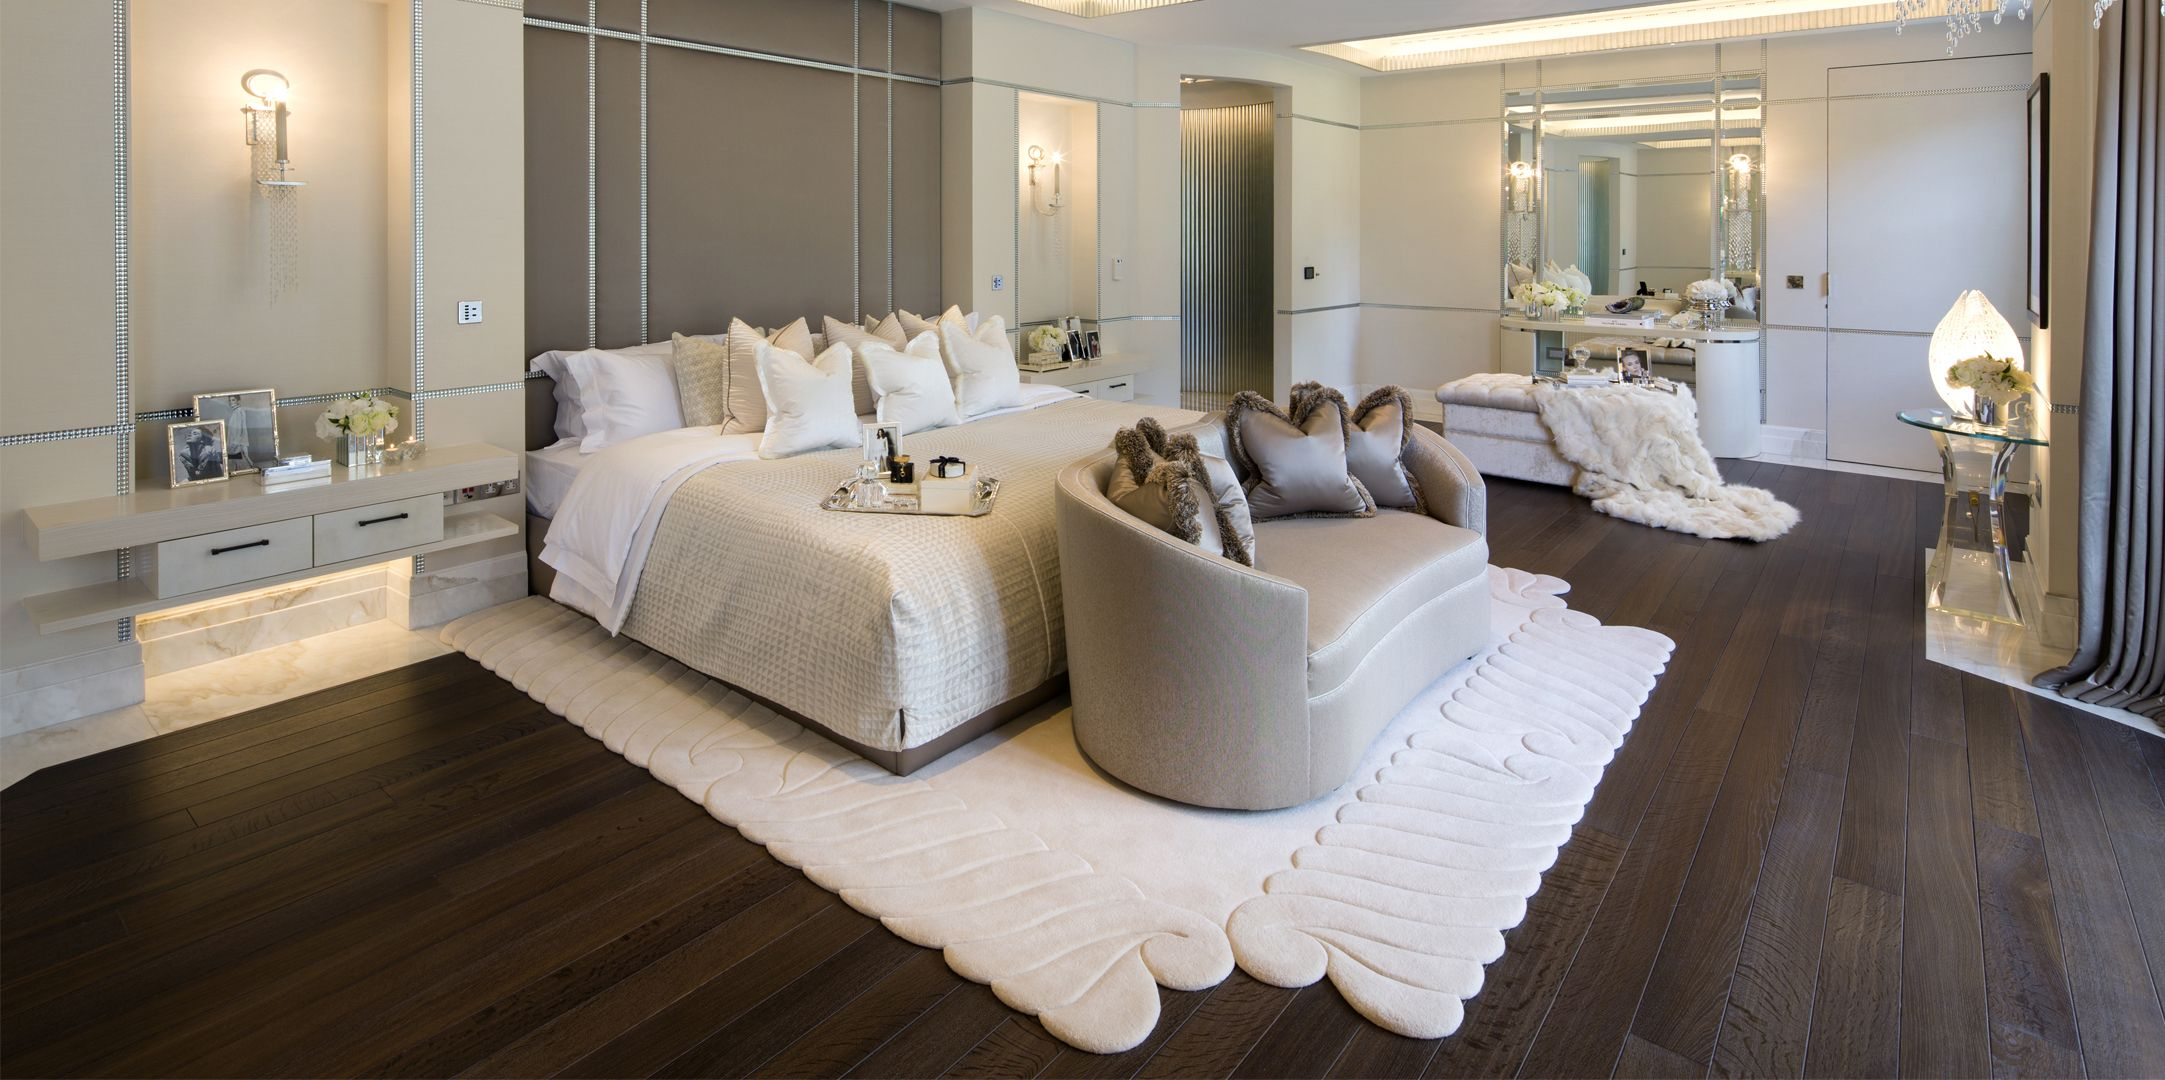 MASTER BEDROOM By Loomah Bespoke Carpets & Rugs